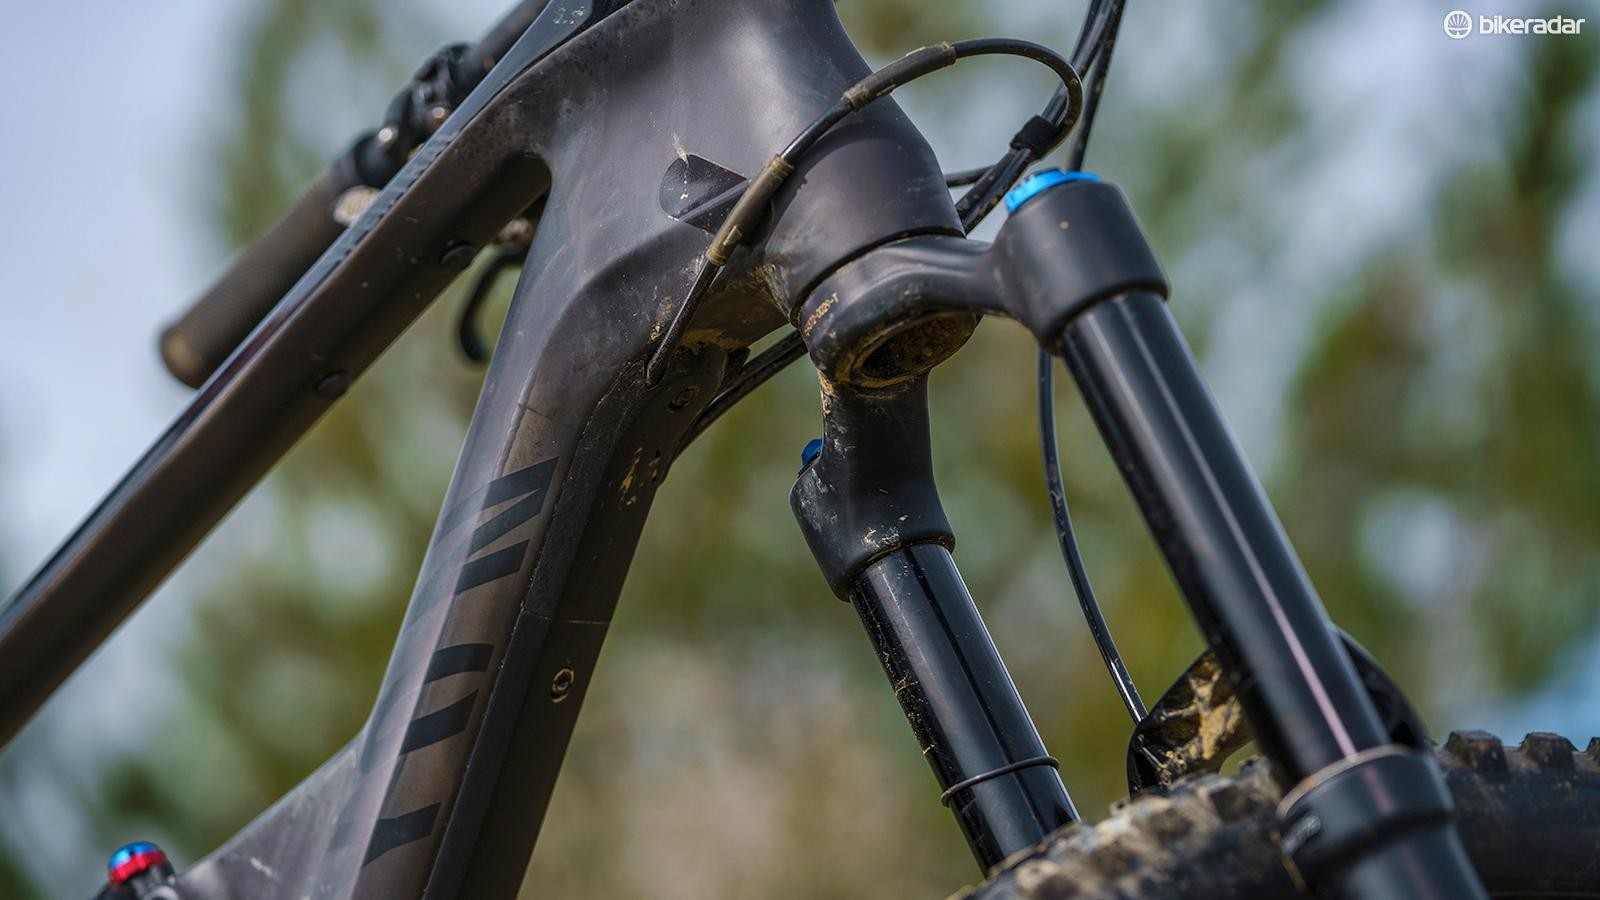 Canyon's frame detailing is among the best out there, including this neat down tube protector / cable guide